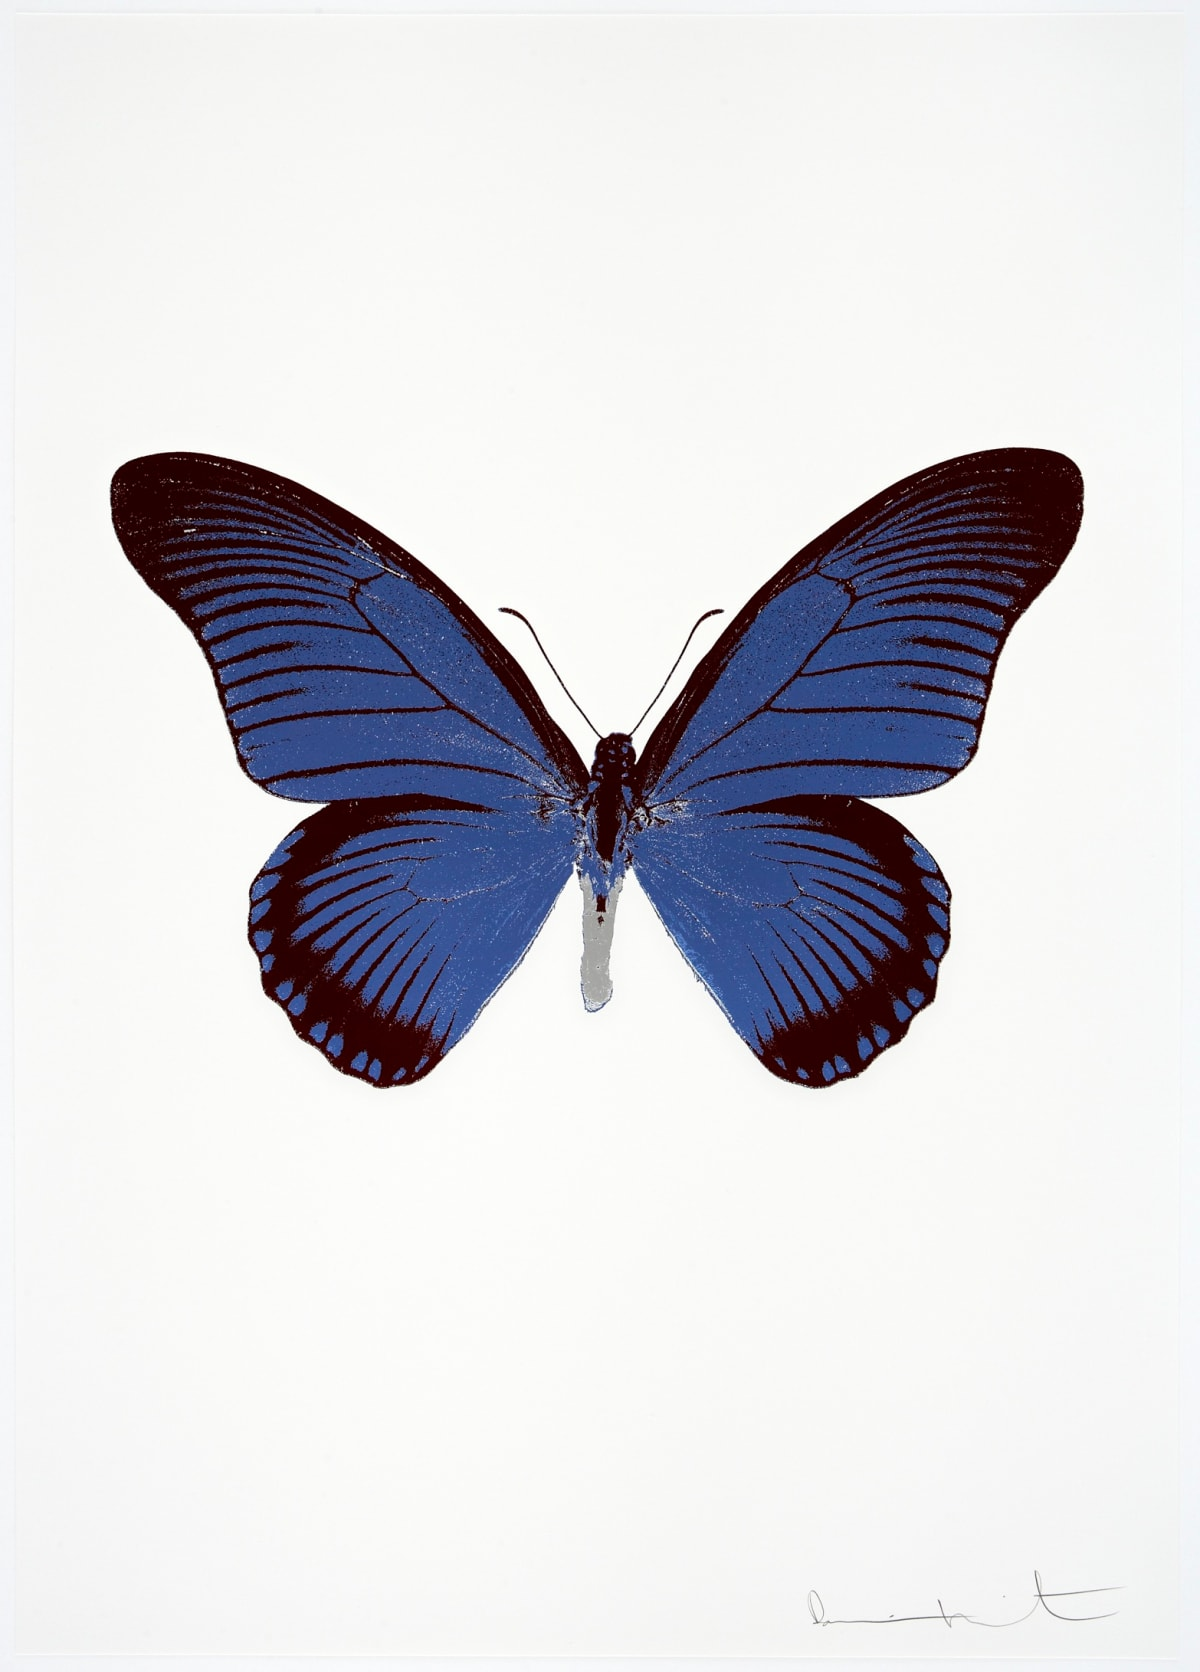 Damien Hirst The Souls IV - Frost Blue/Burgundy/Silver Gloss Damien Hirst butterfly foil print for sale Damien Hirst print for sale , 2010 3 colour foil block on 300gsm Arches 88 archival paper. Signed and numbered. Published by Paul Stolper and Other Criteria 72 x 51cm OC8023 / 1418-46 Edition of 15